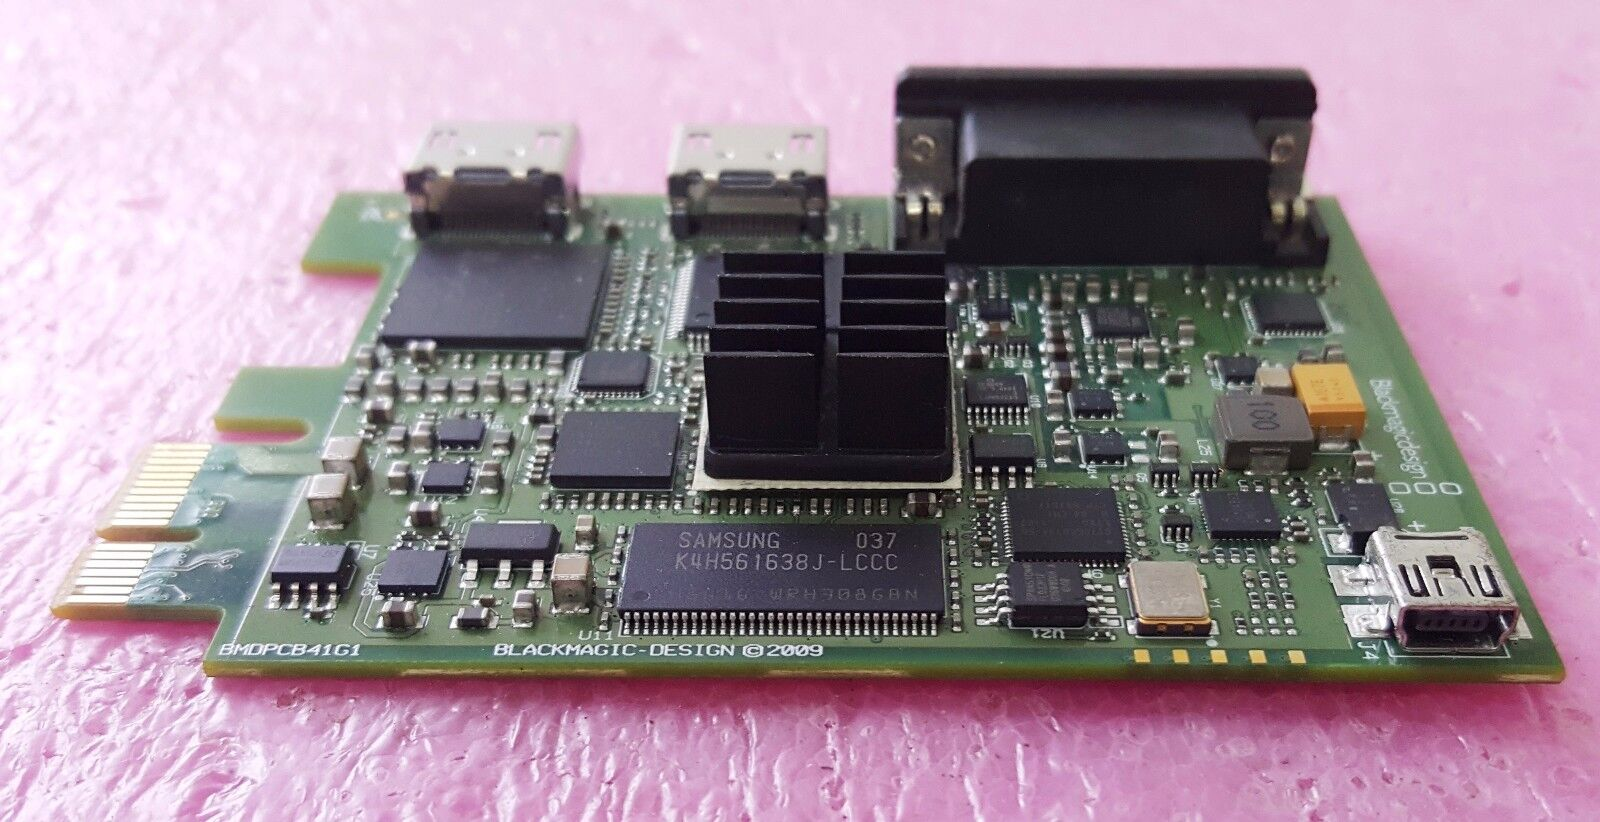 BlackMagic Design Used BMDPCB41G1 Intensity Pro